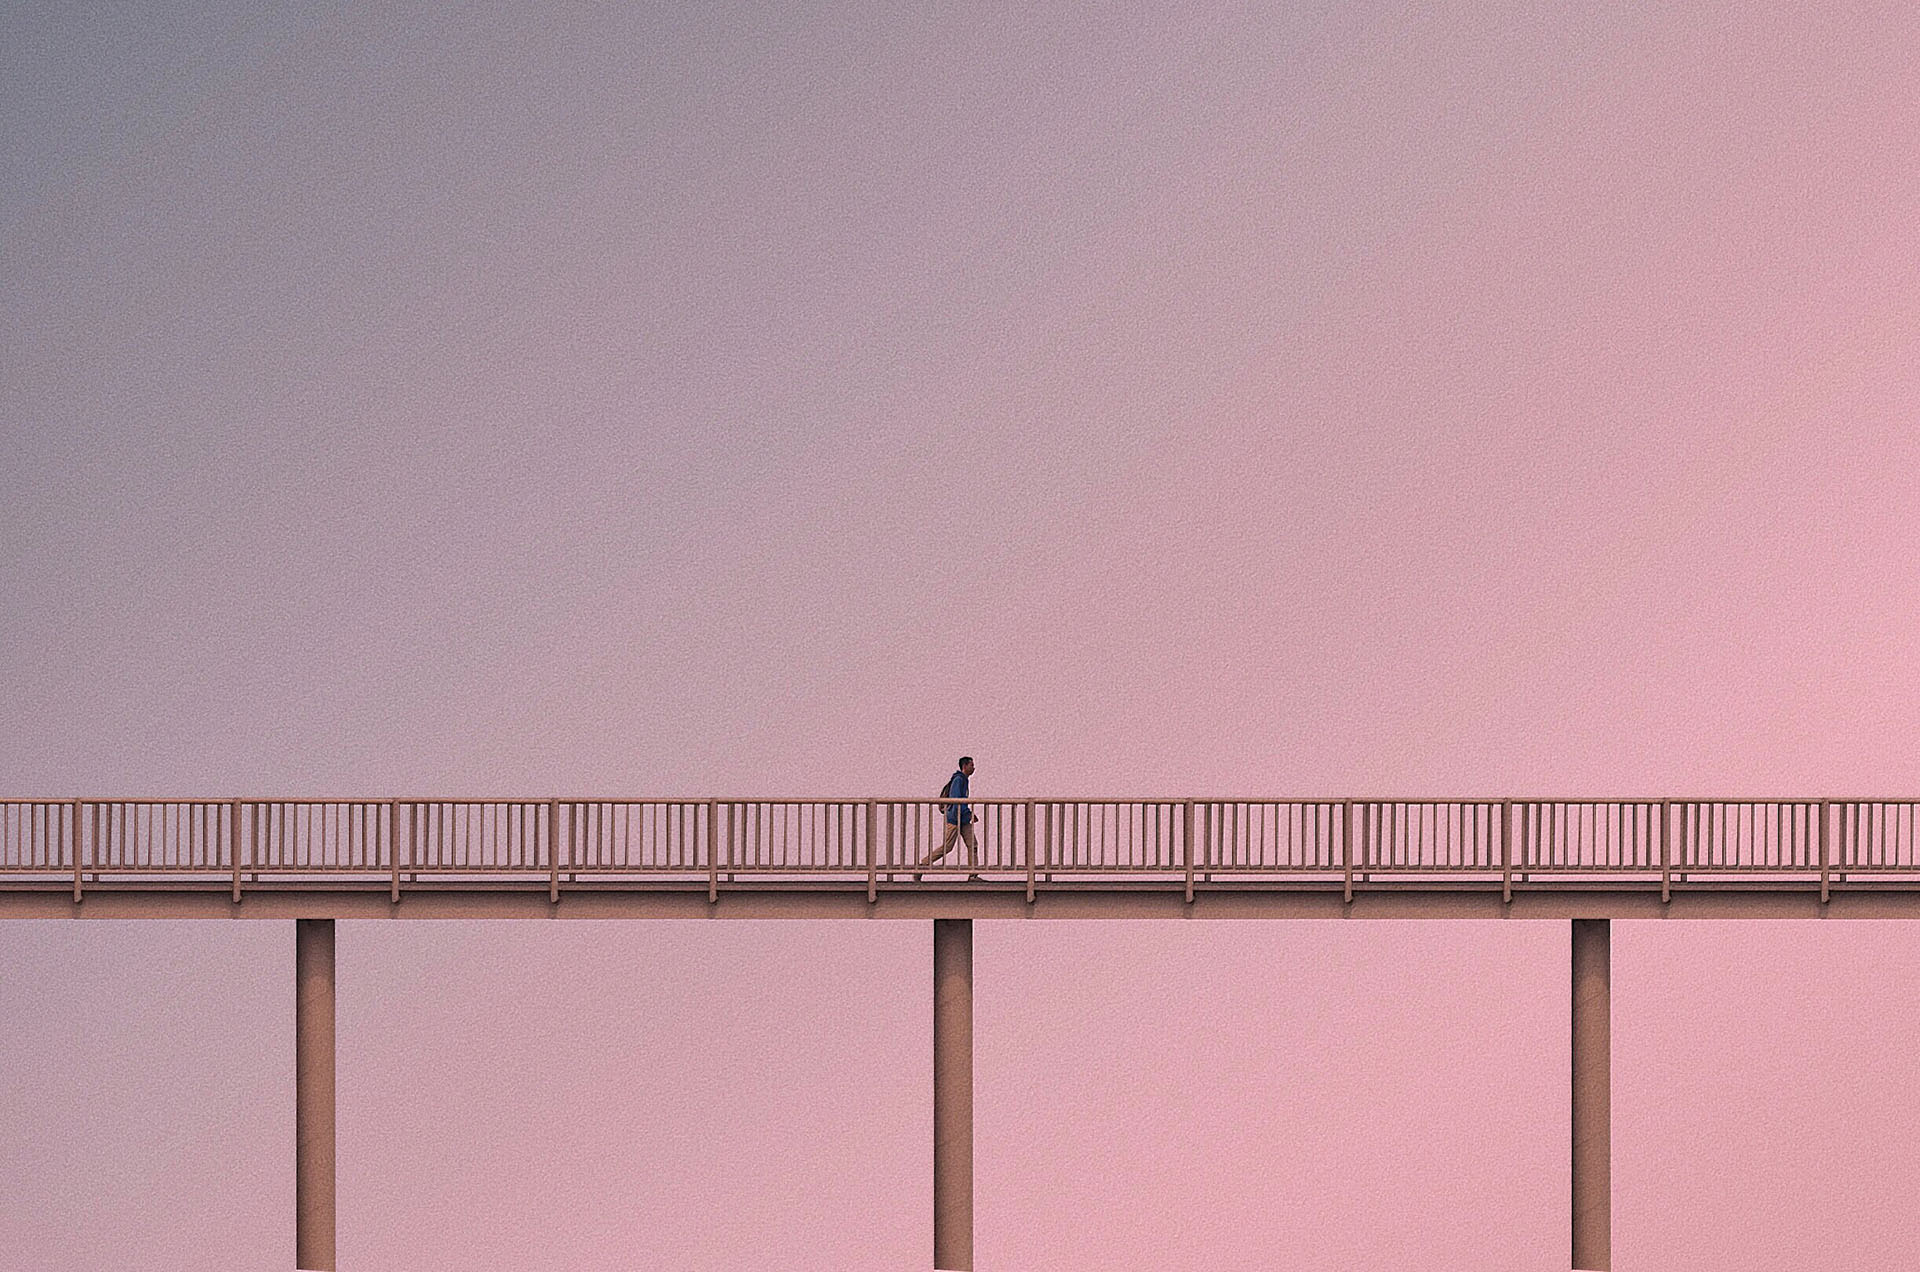 A tiny human subject against an exaggerated, large-scale background | Andhika Ramadhian | STIRworld